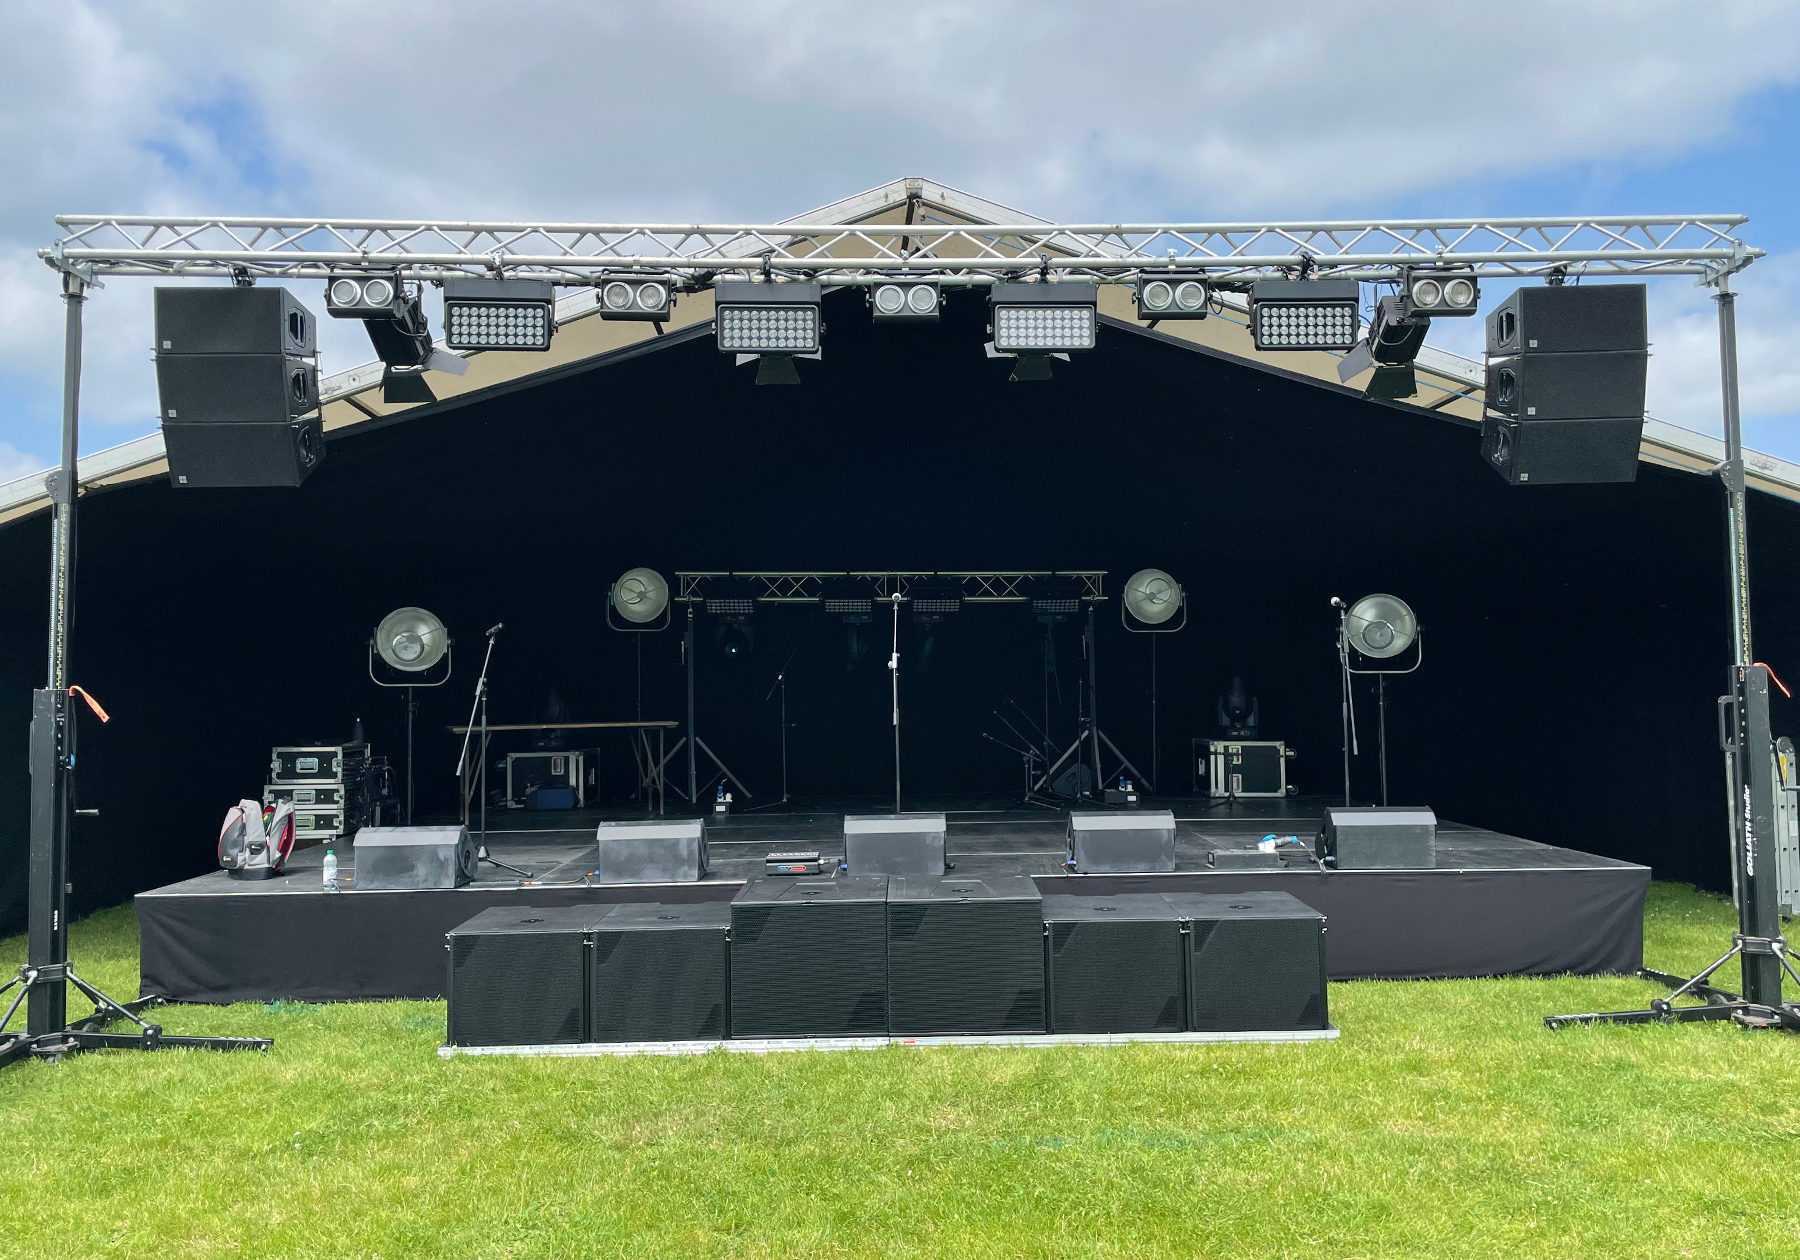 Lighting hire & livestream equipment in South West Wales, Cardiff, Swansea, Newport, Carmarthenshire & Pembrokeshire